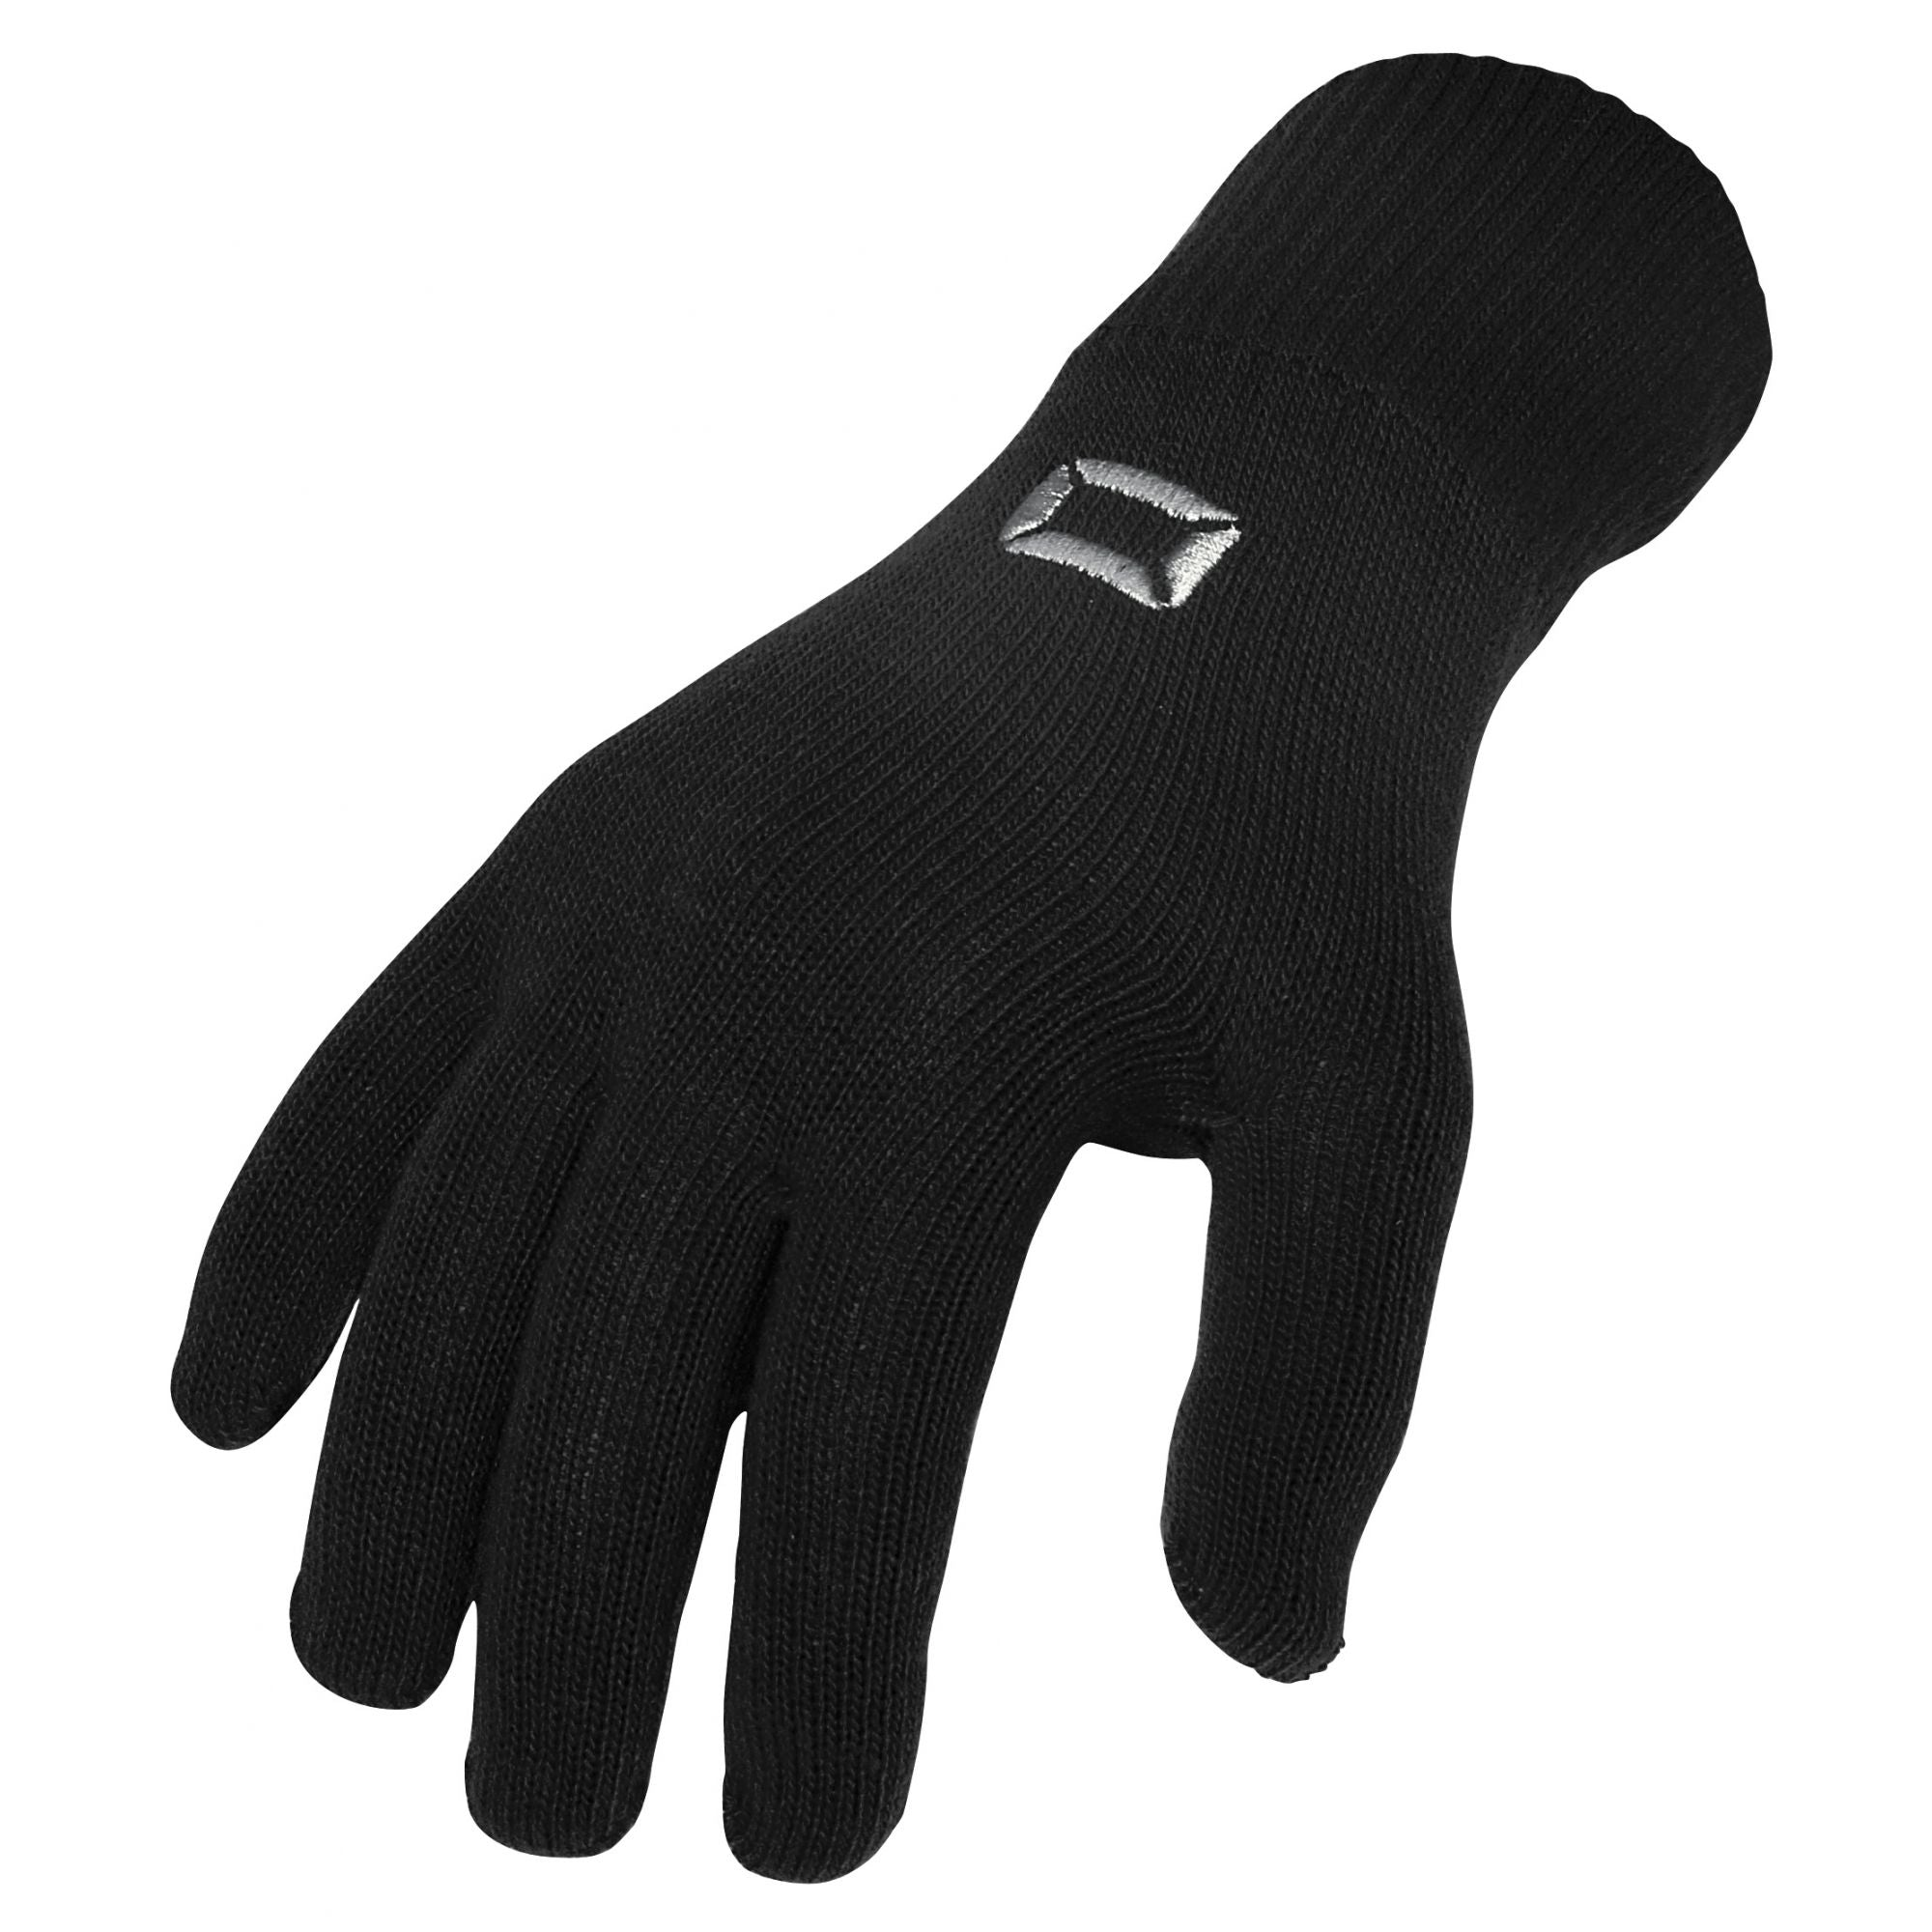 Stanno Stadium player glove in black with embroidered silver logo on back of hand